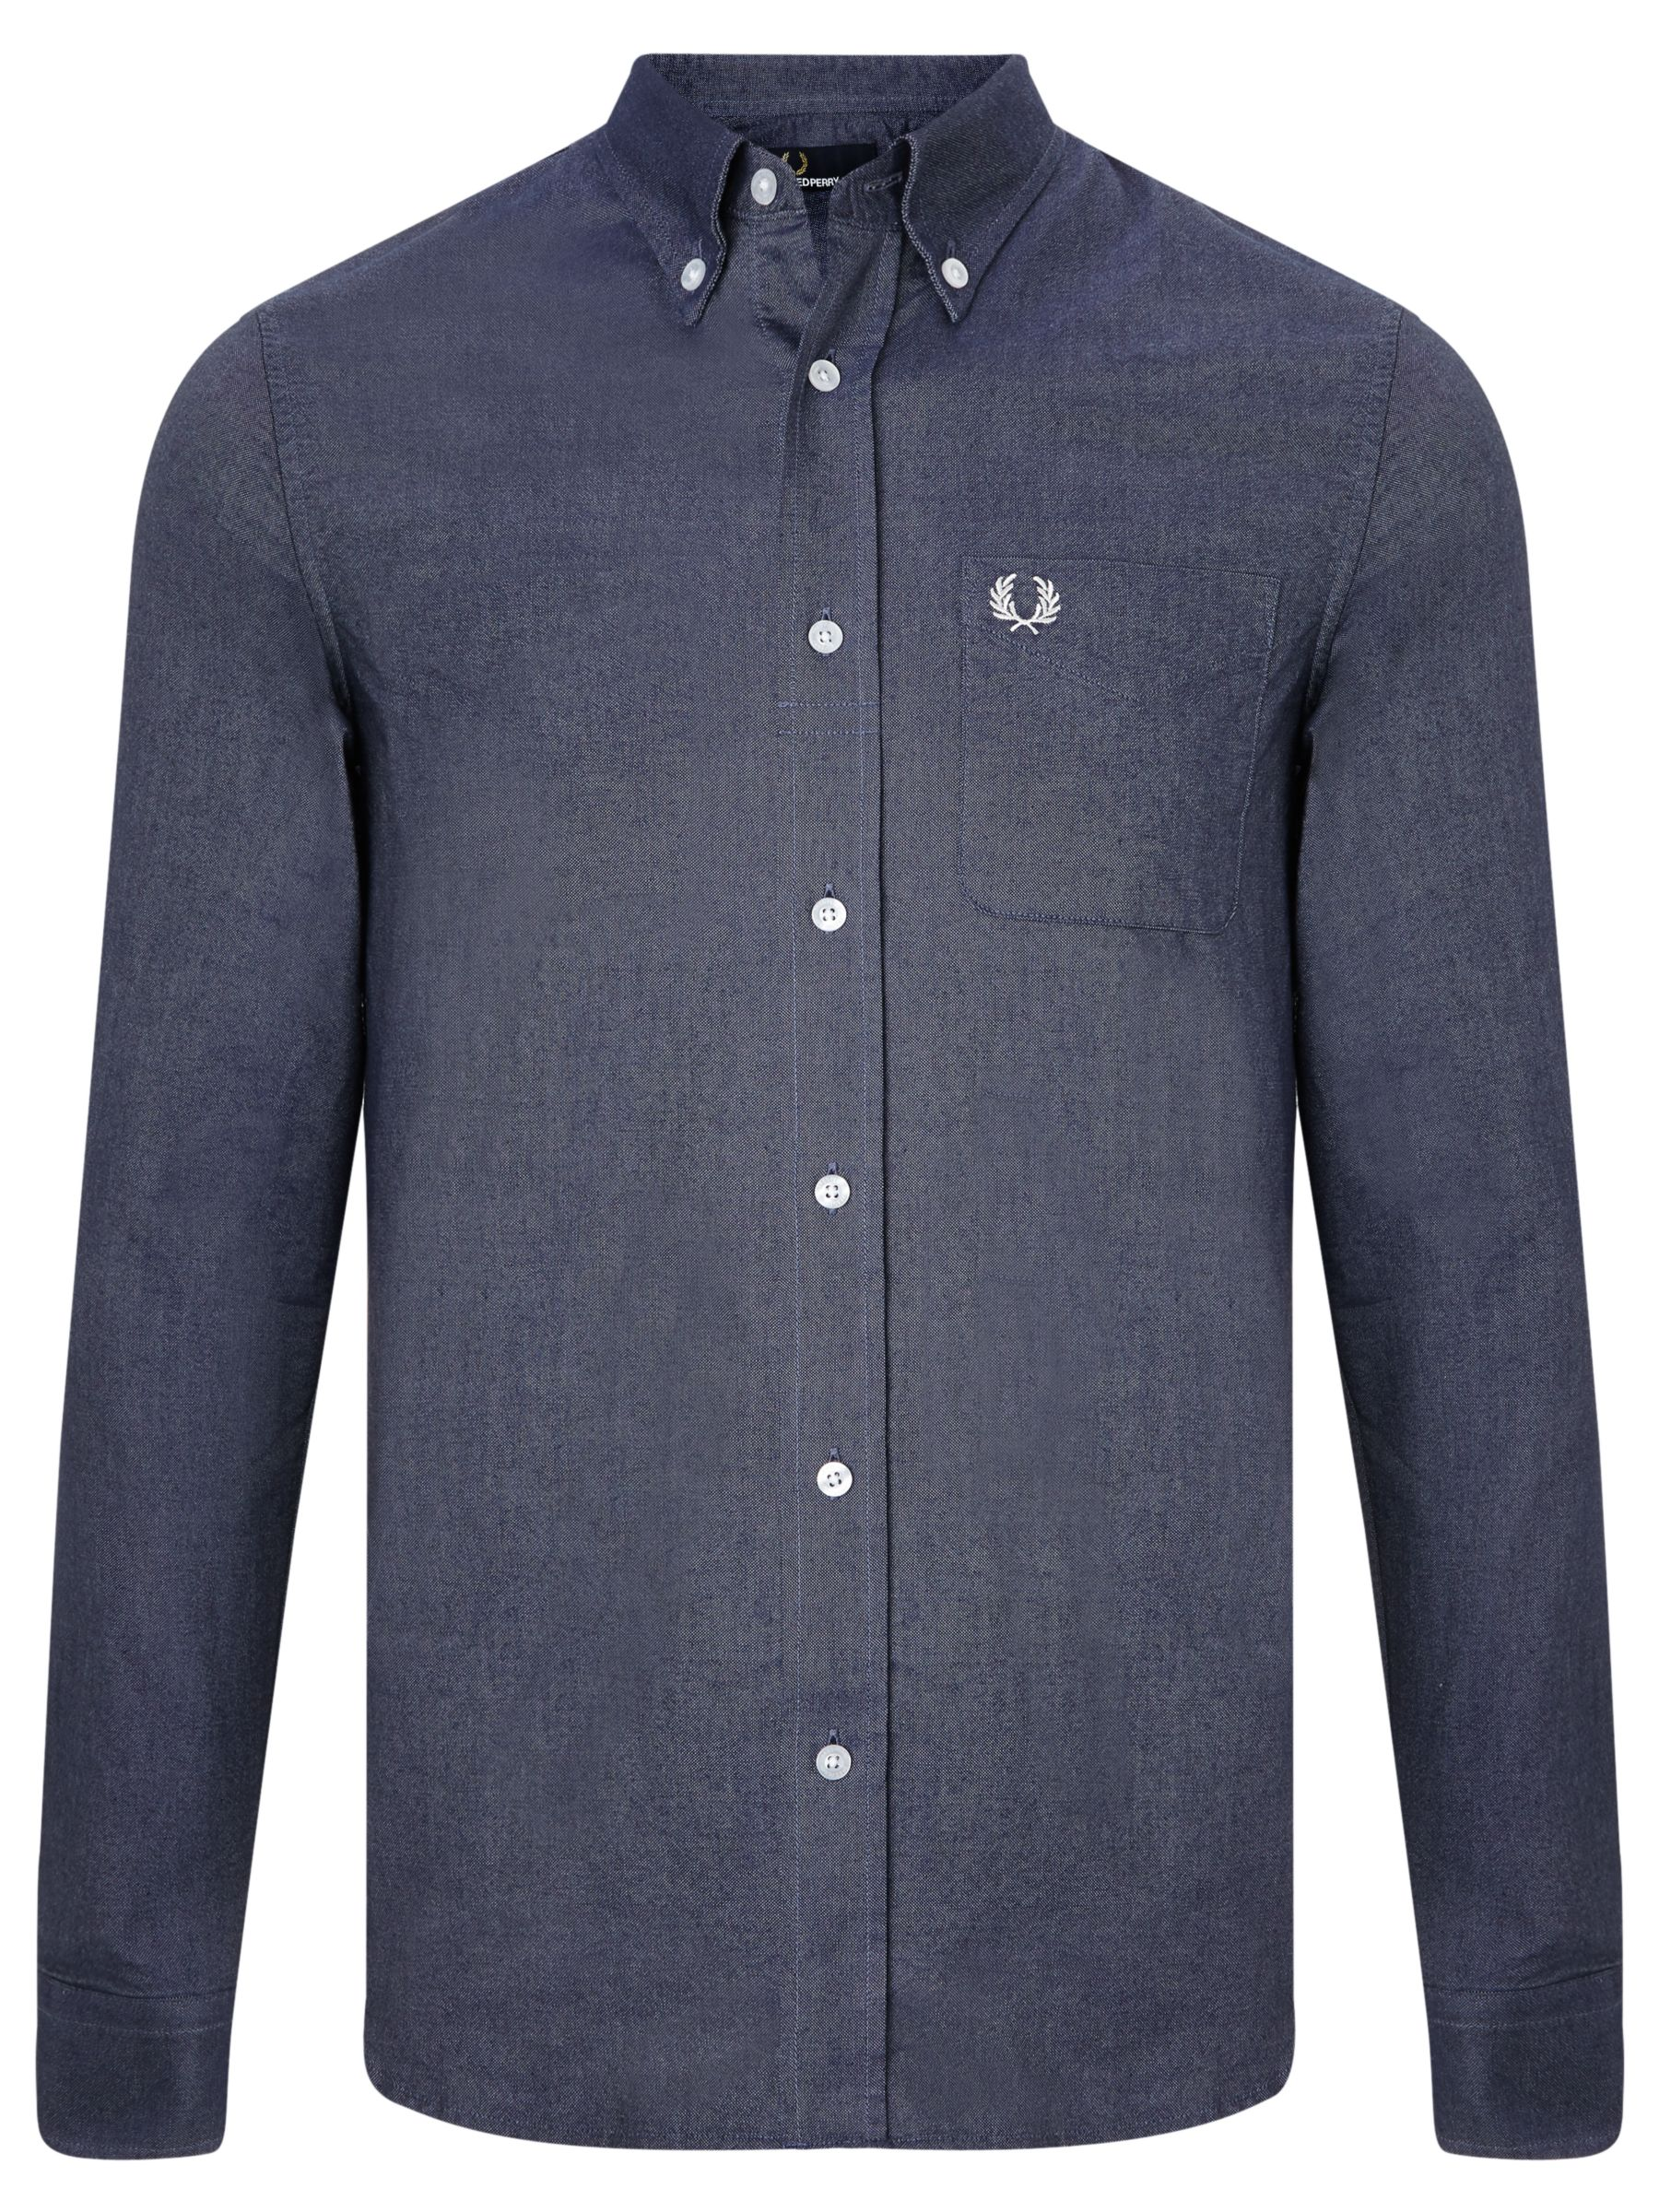 Fred Perry Oxford Long Sleeve Solid Shirt, Navy at John